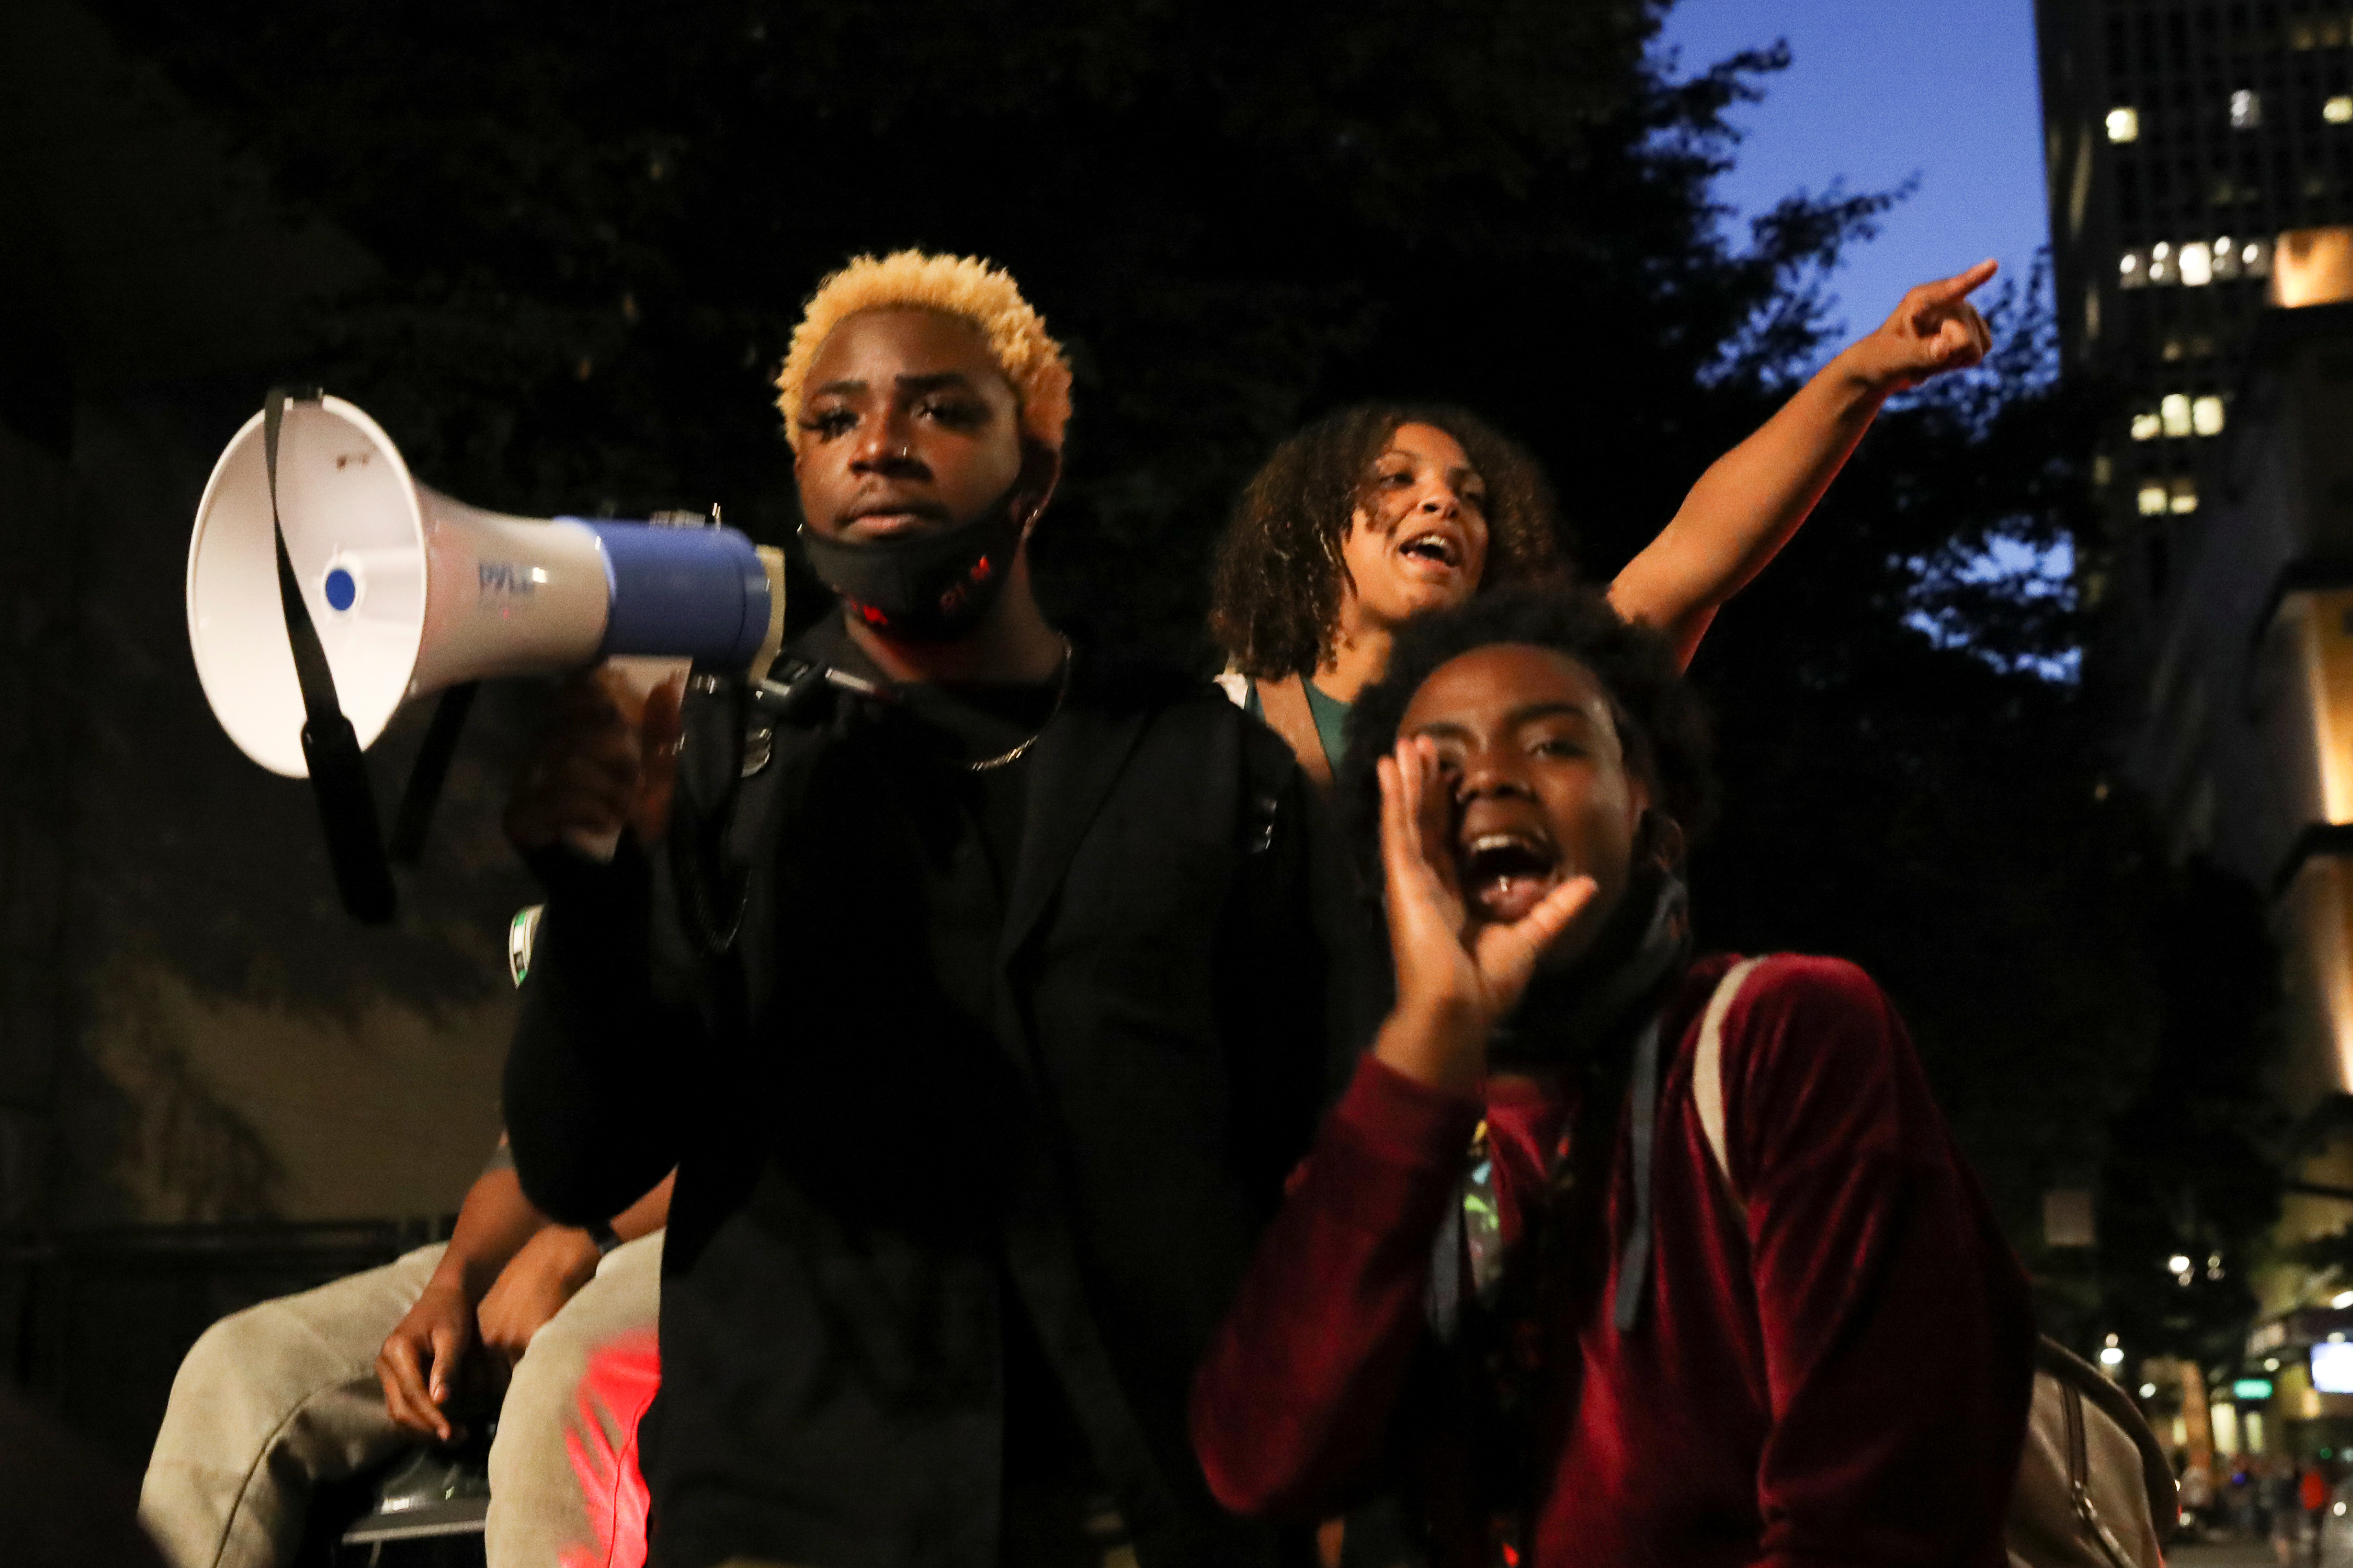 Black Lives Matter demonstrators take part in a protest against racial inequality and police violence in Portland, Oregon, U.S., July 24, 2020. REUTERS/Caitlin Ochs